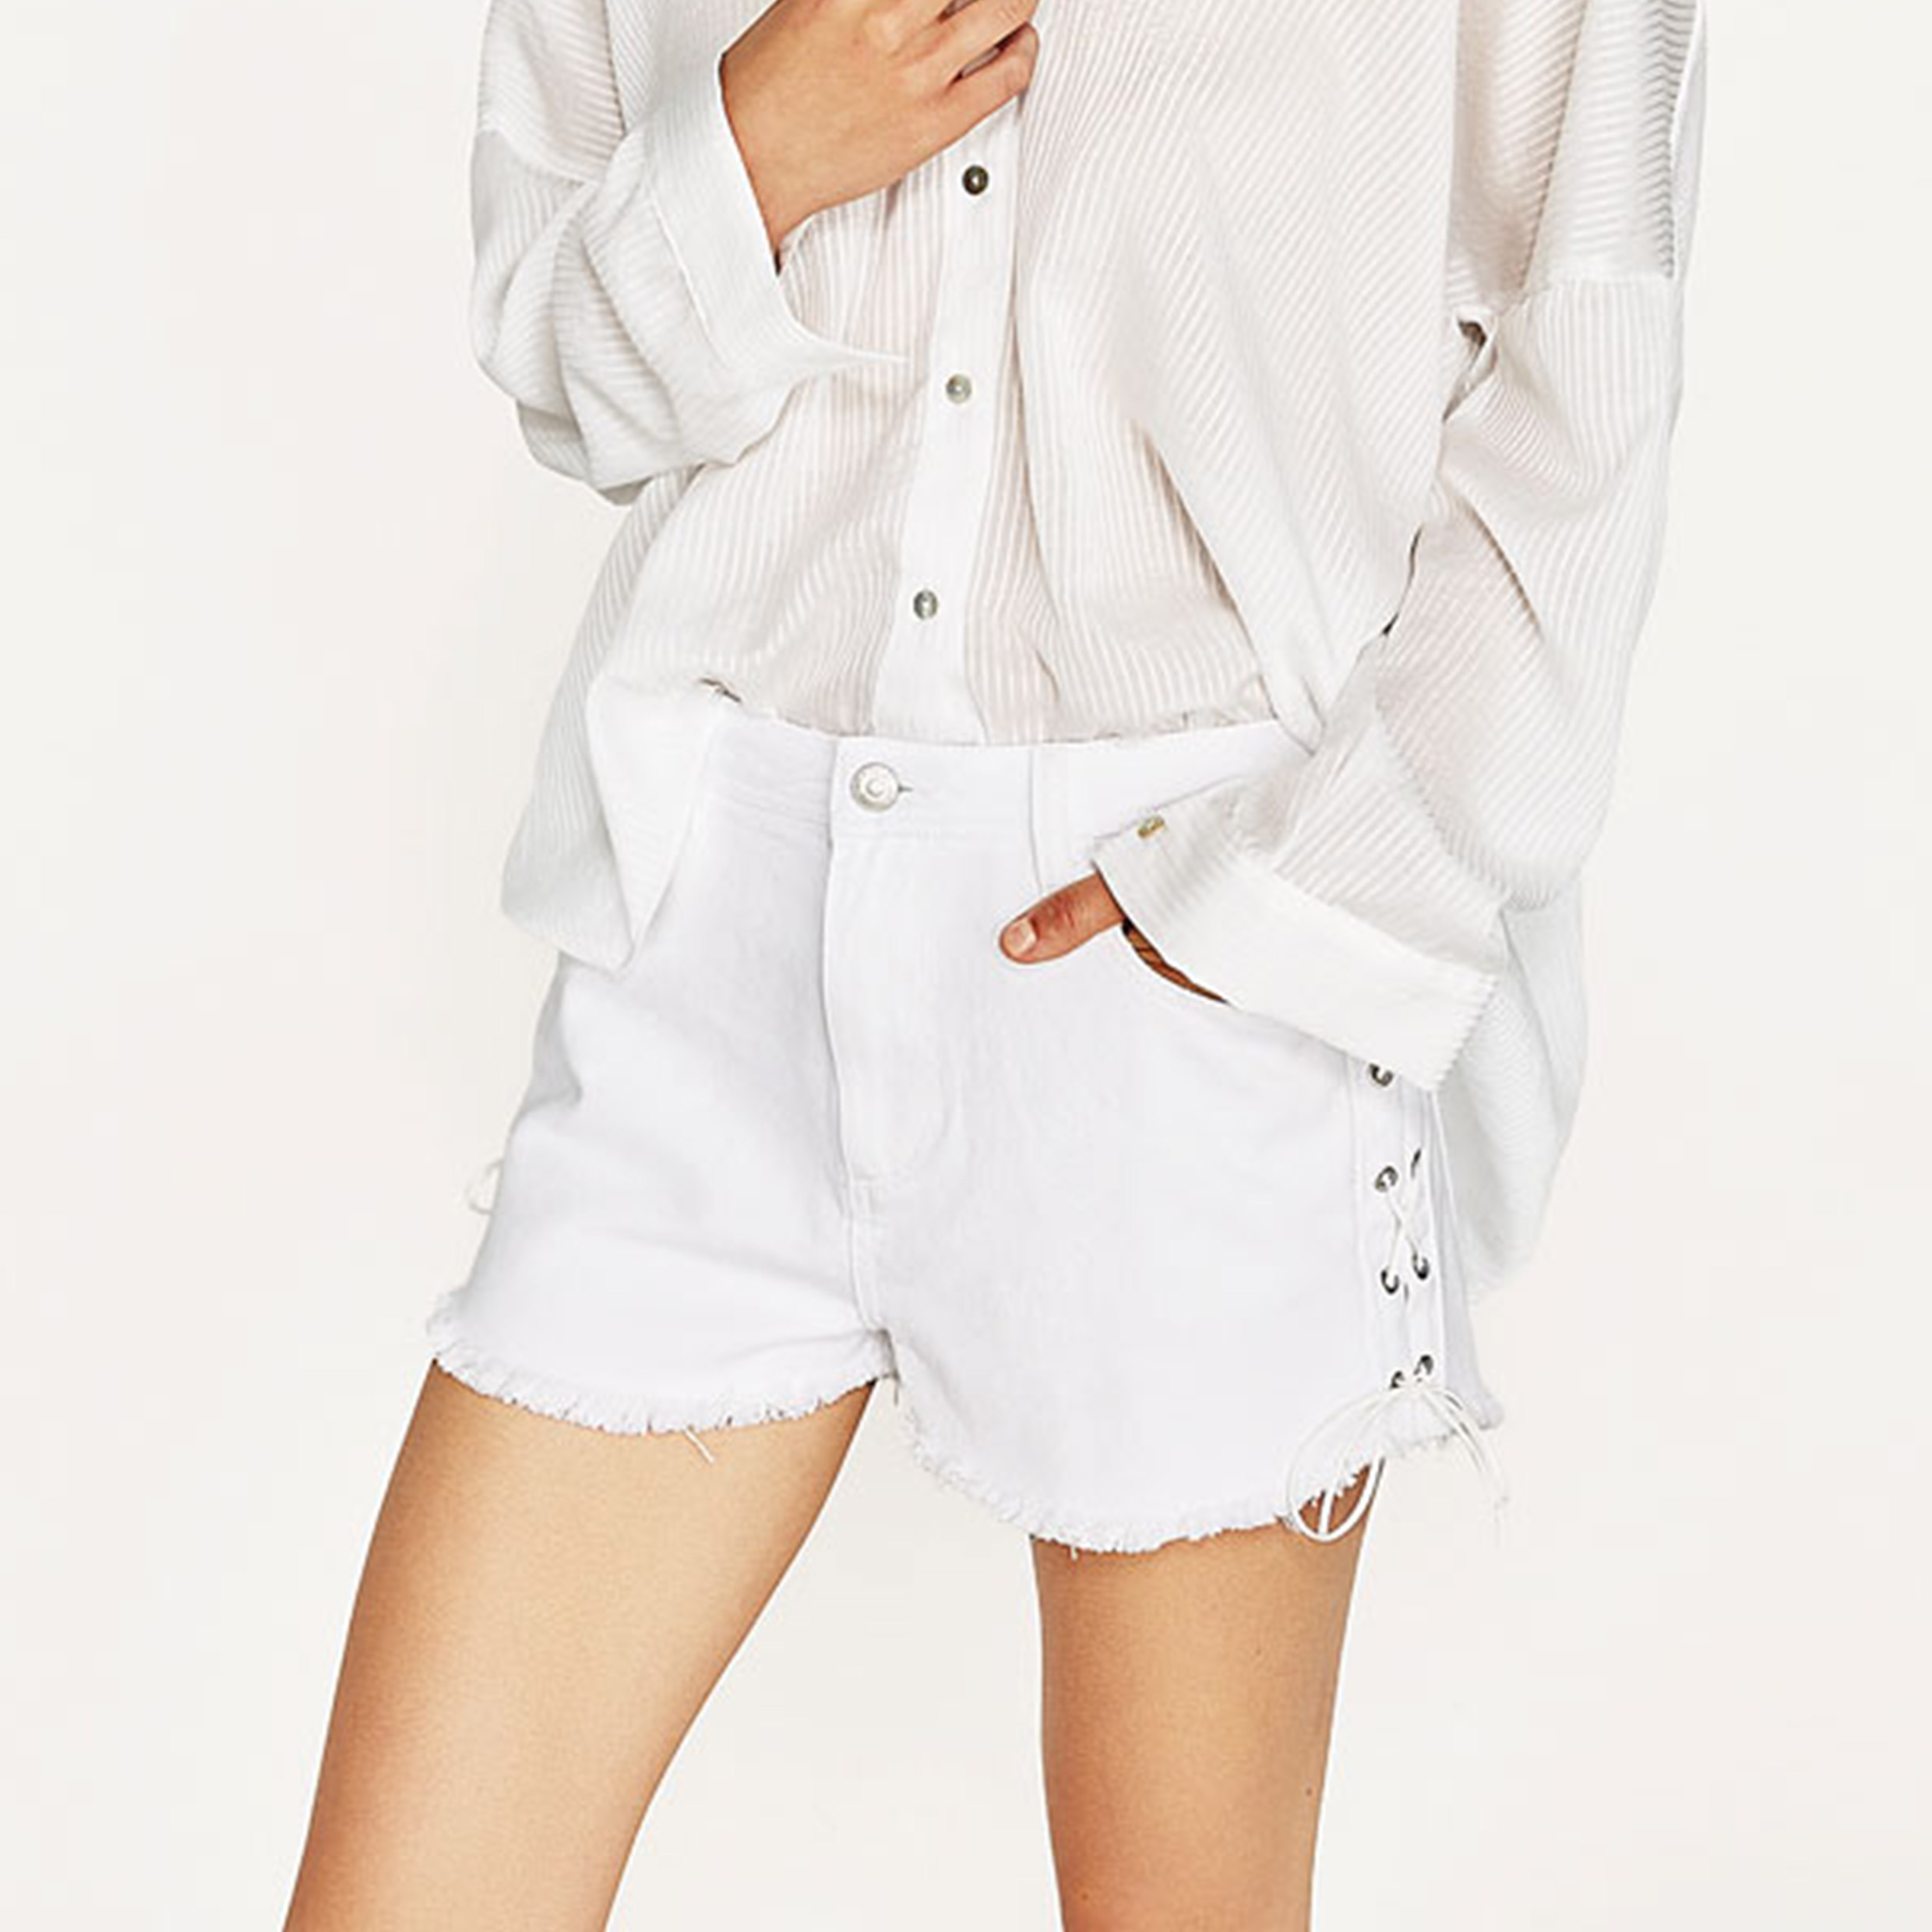 Ladies Fashion Side Bandage Preppy Style Short Pants